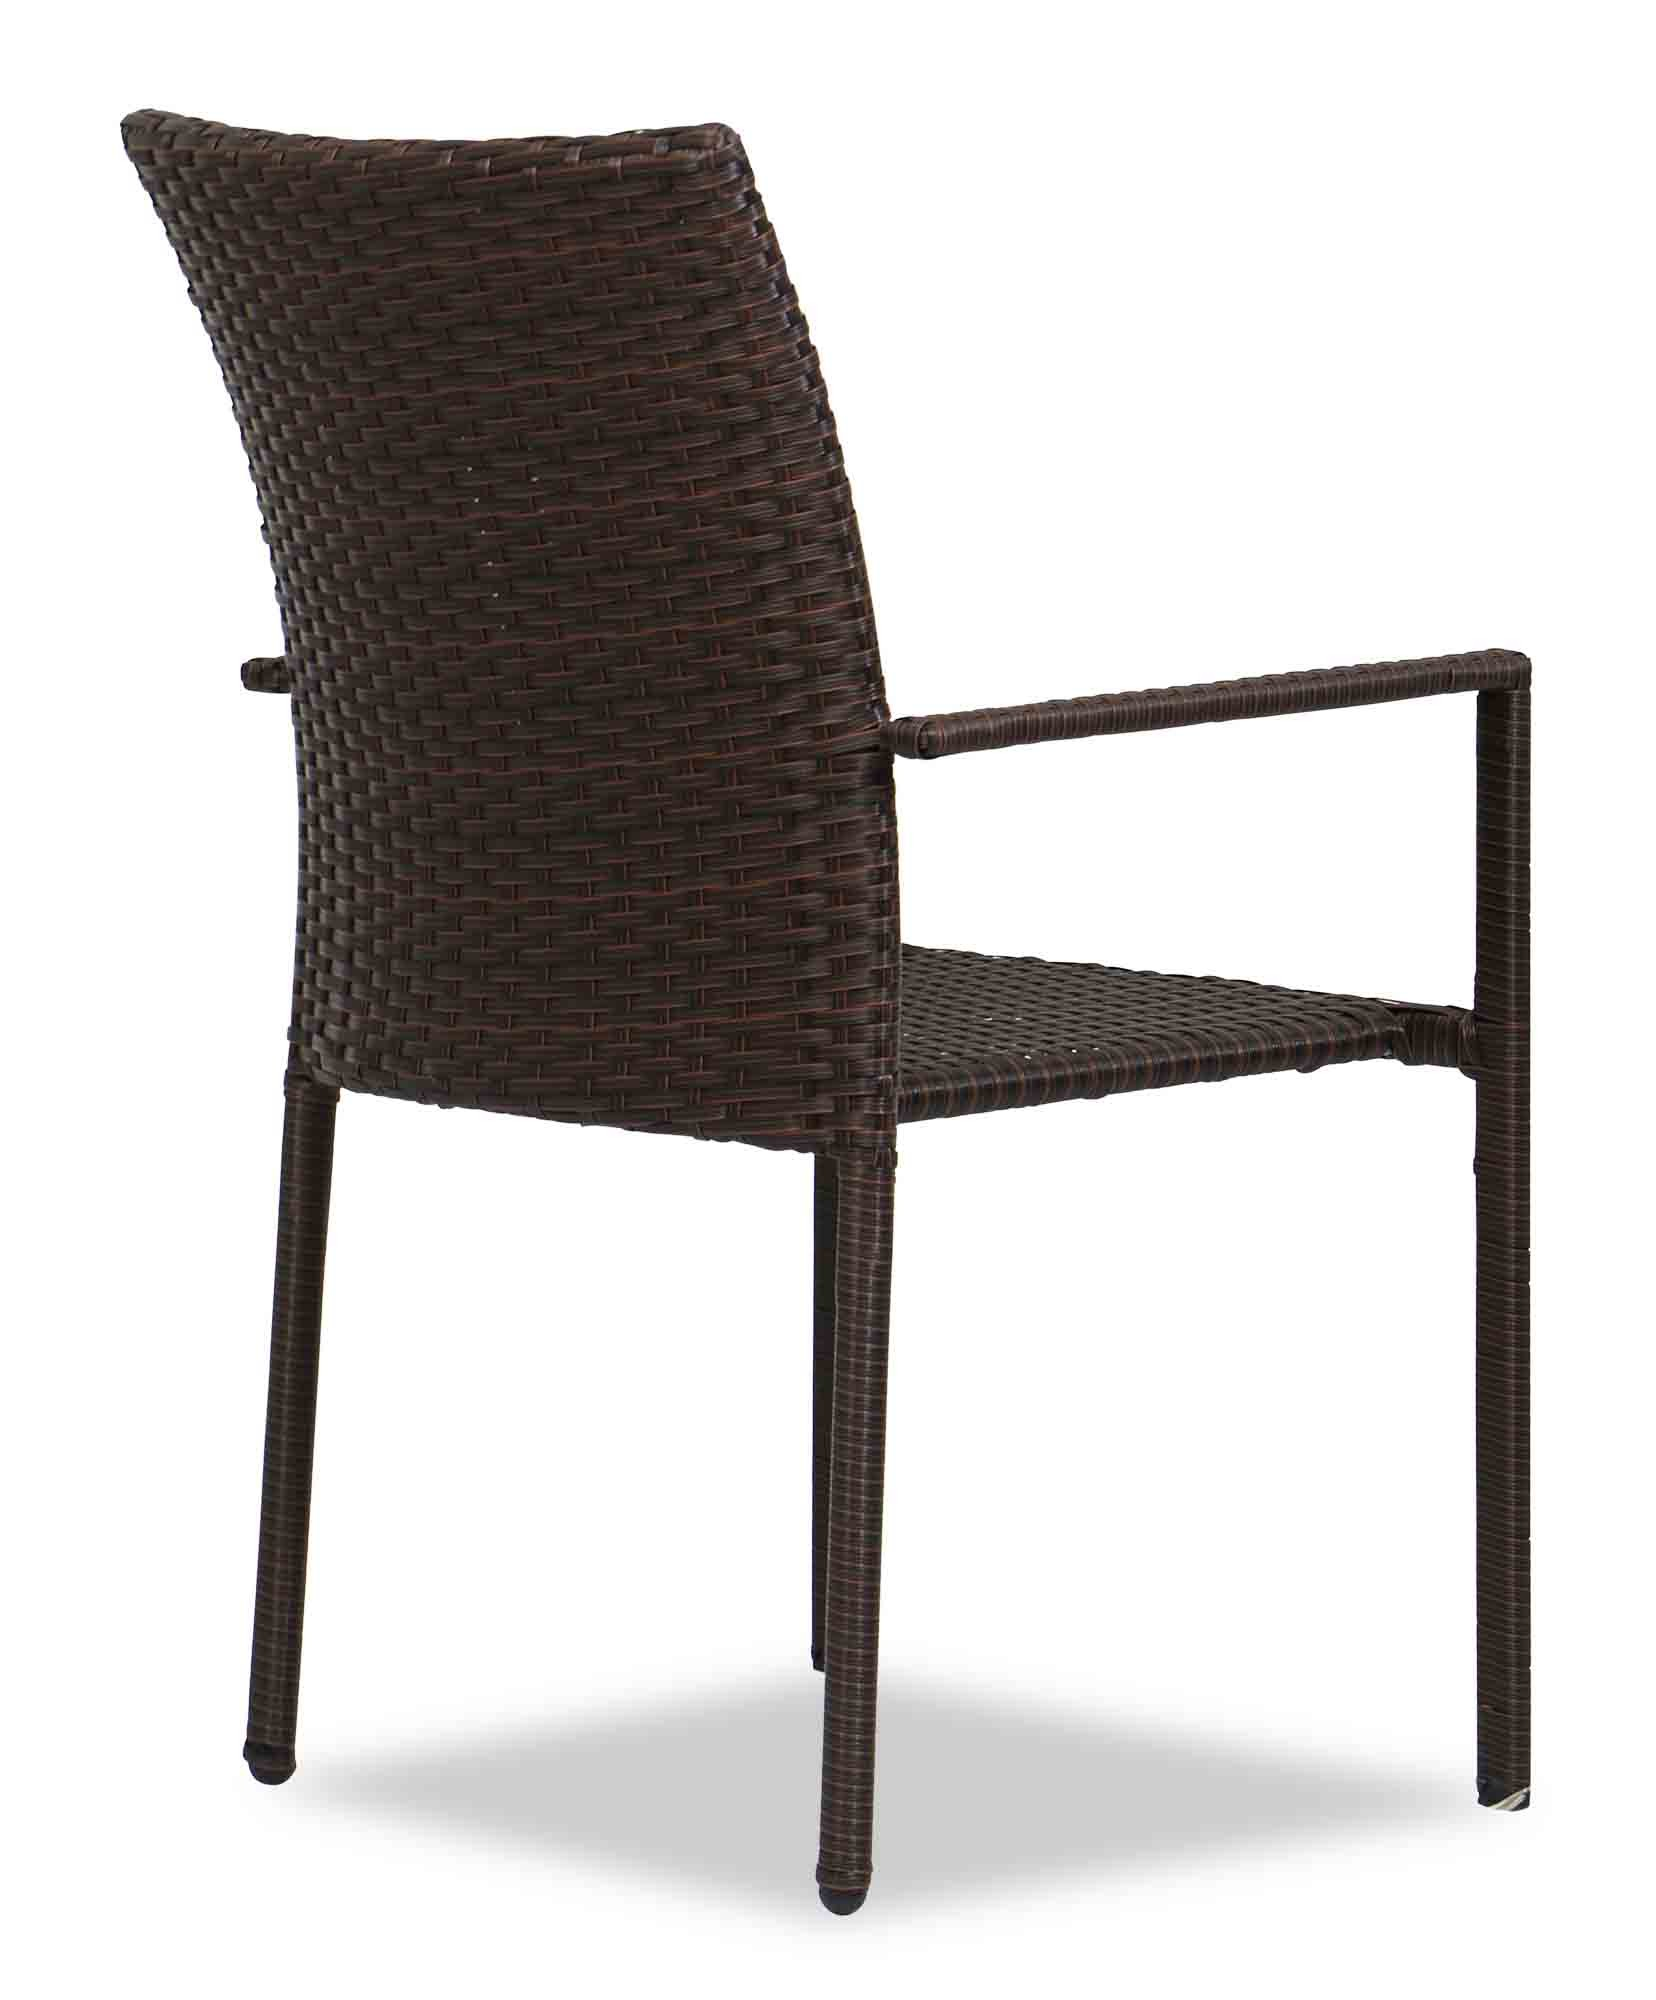 Wakiky Outdoor Dining Chair Brown Furniture amp Home D233cor  : wakikyarmbrown7 from www.fortytwo.sg size 1656 x 2000 jpeg 98kB